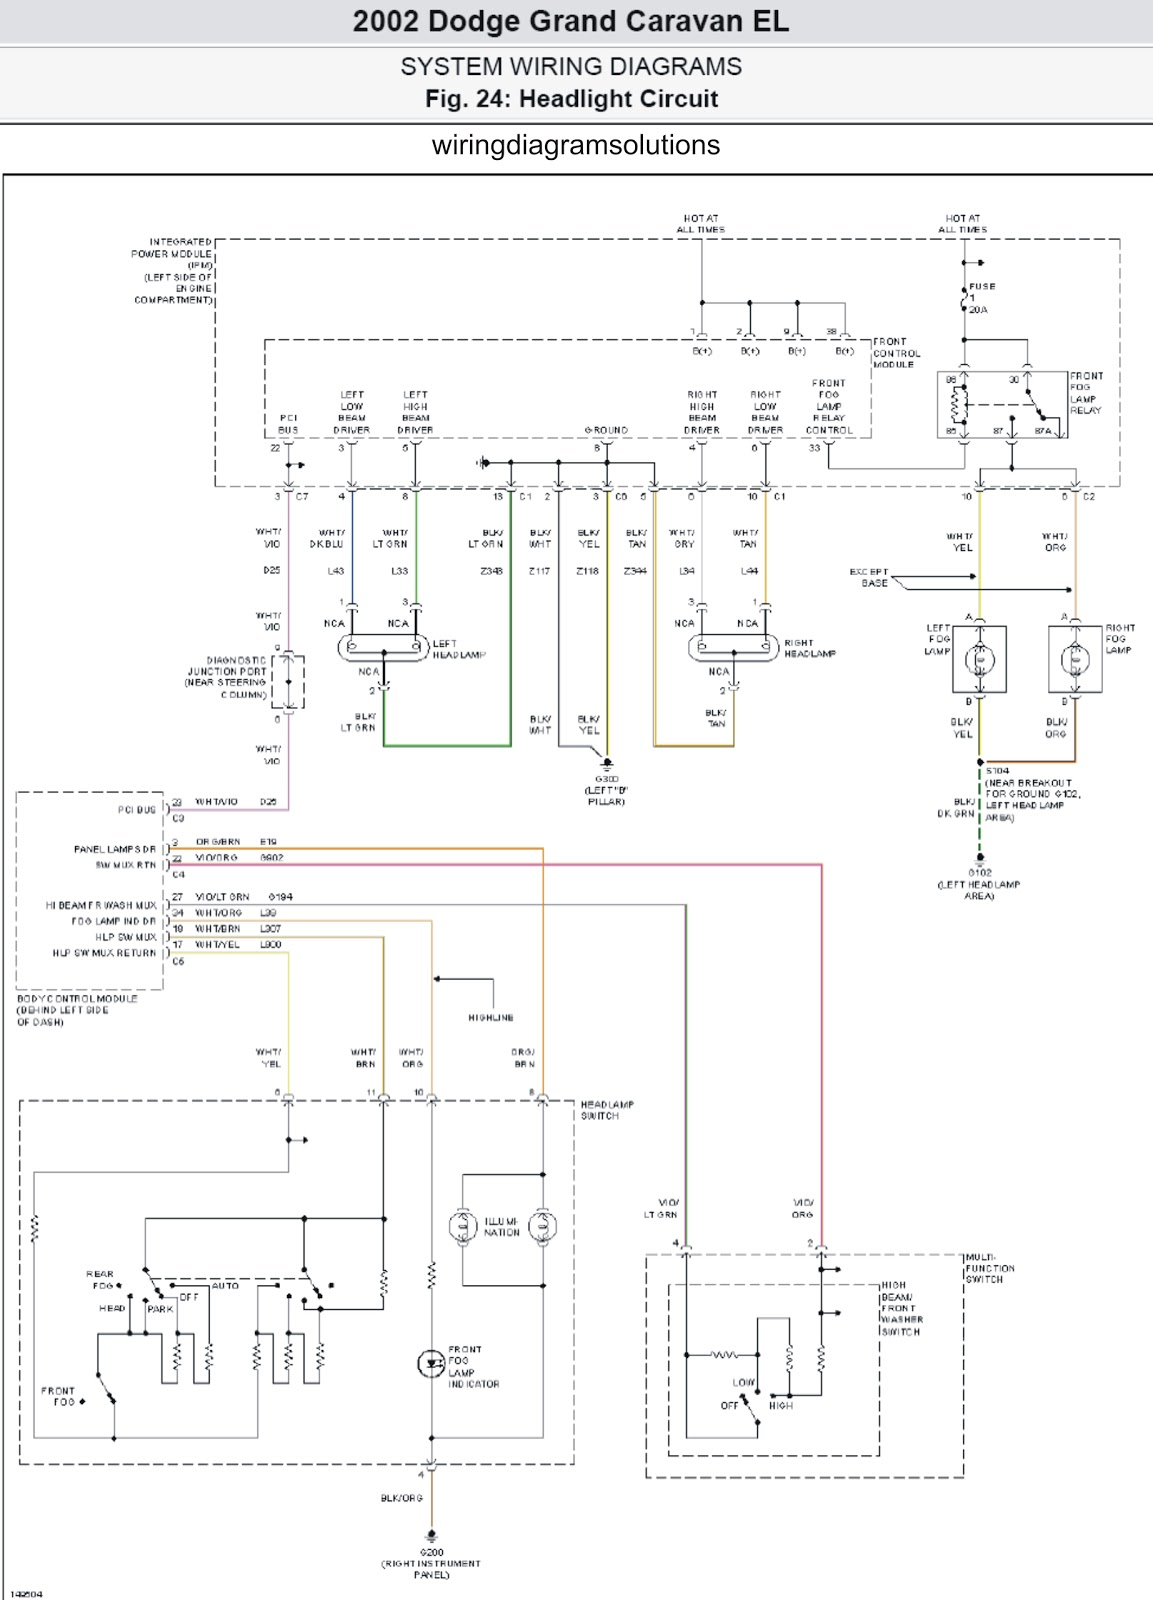 Ford Fusion Wiring Schematic Dodge Neon Diagram Free Data 2001 Grand Caravan Diagrams 2013